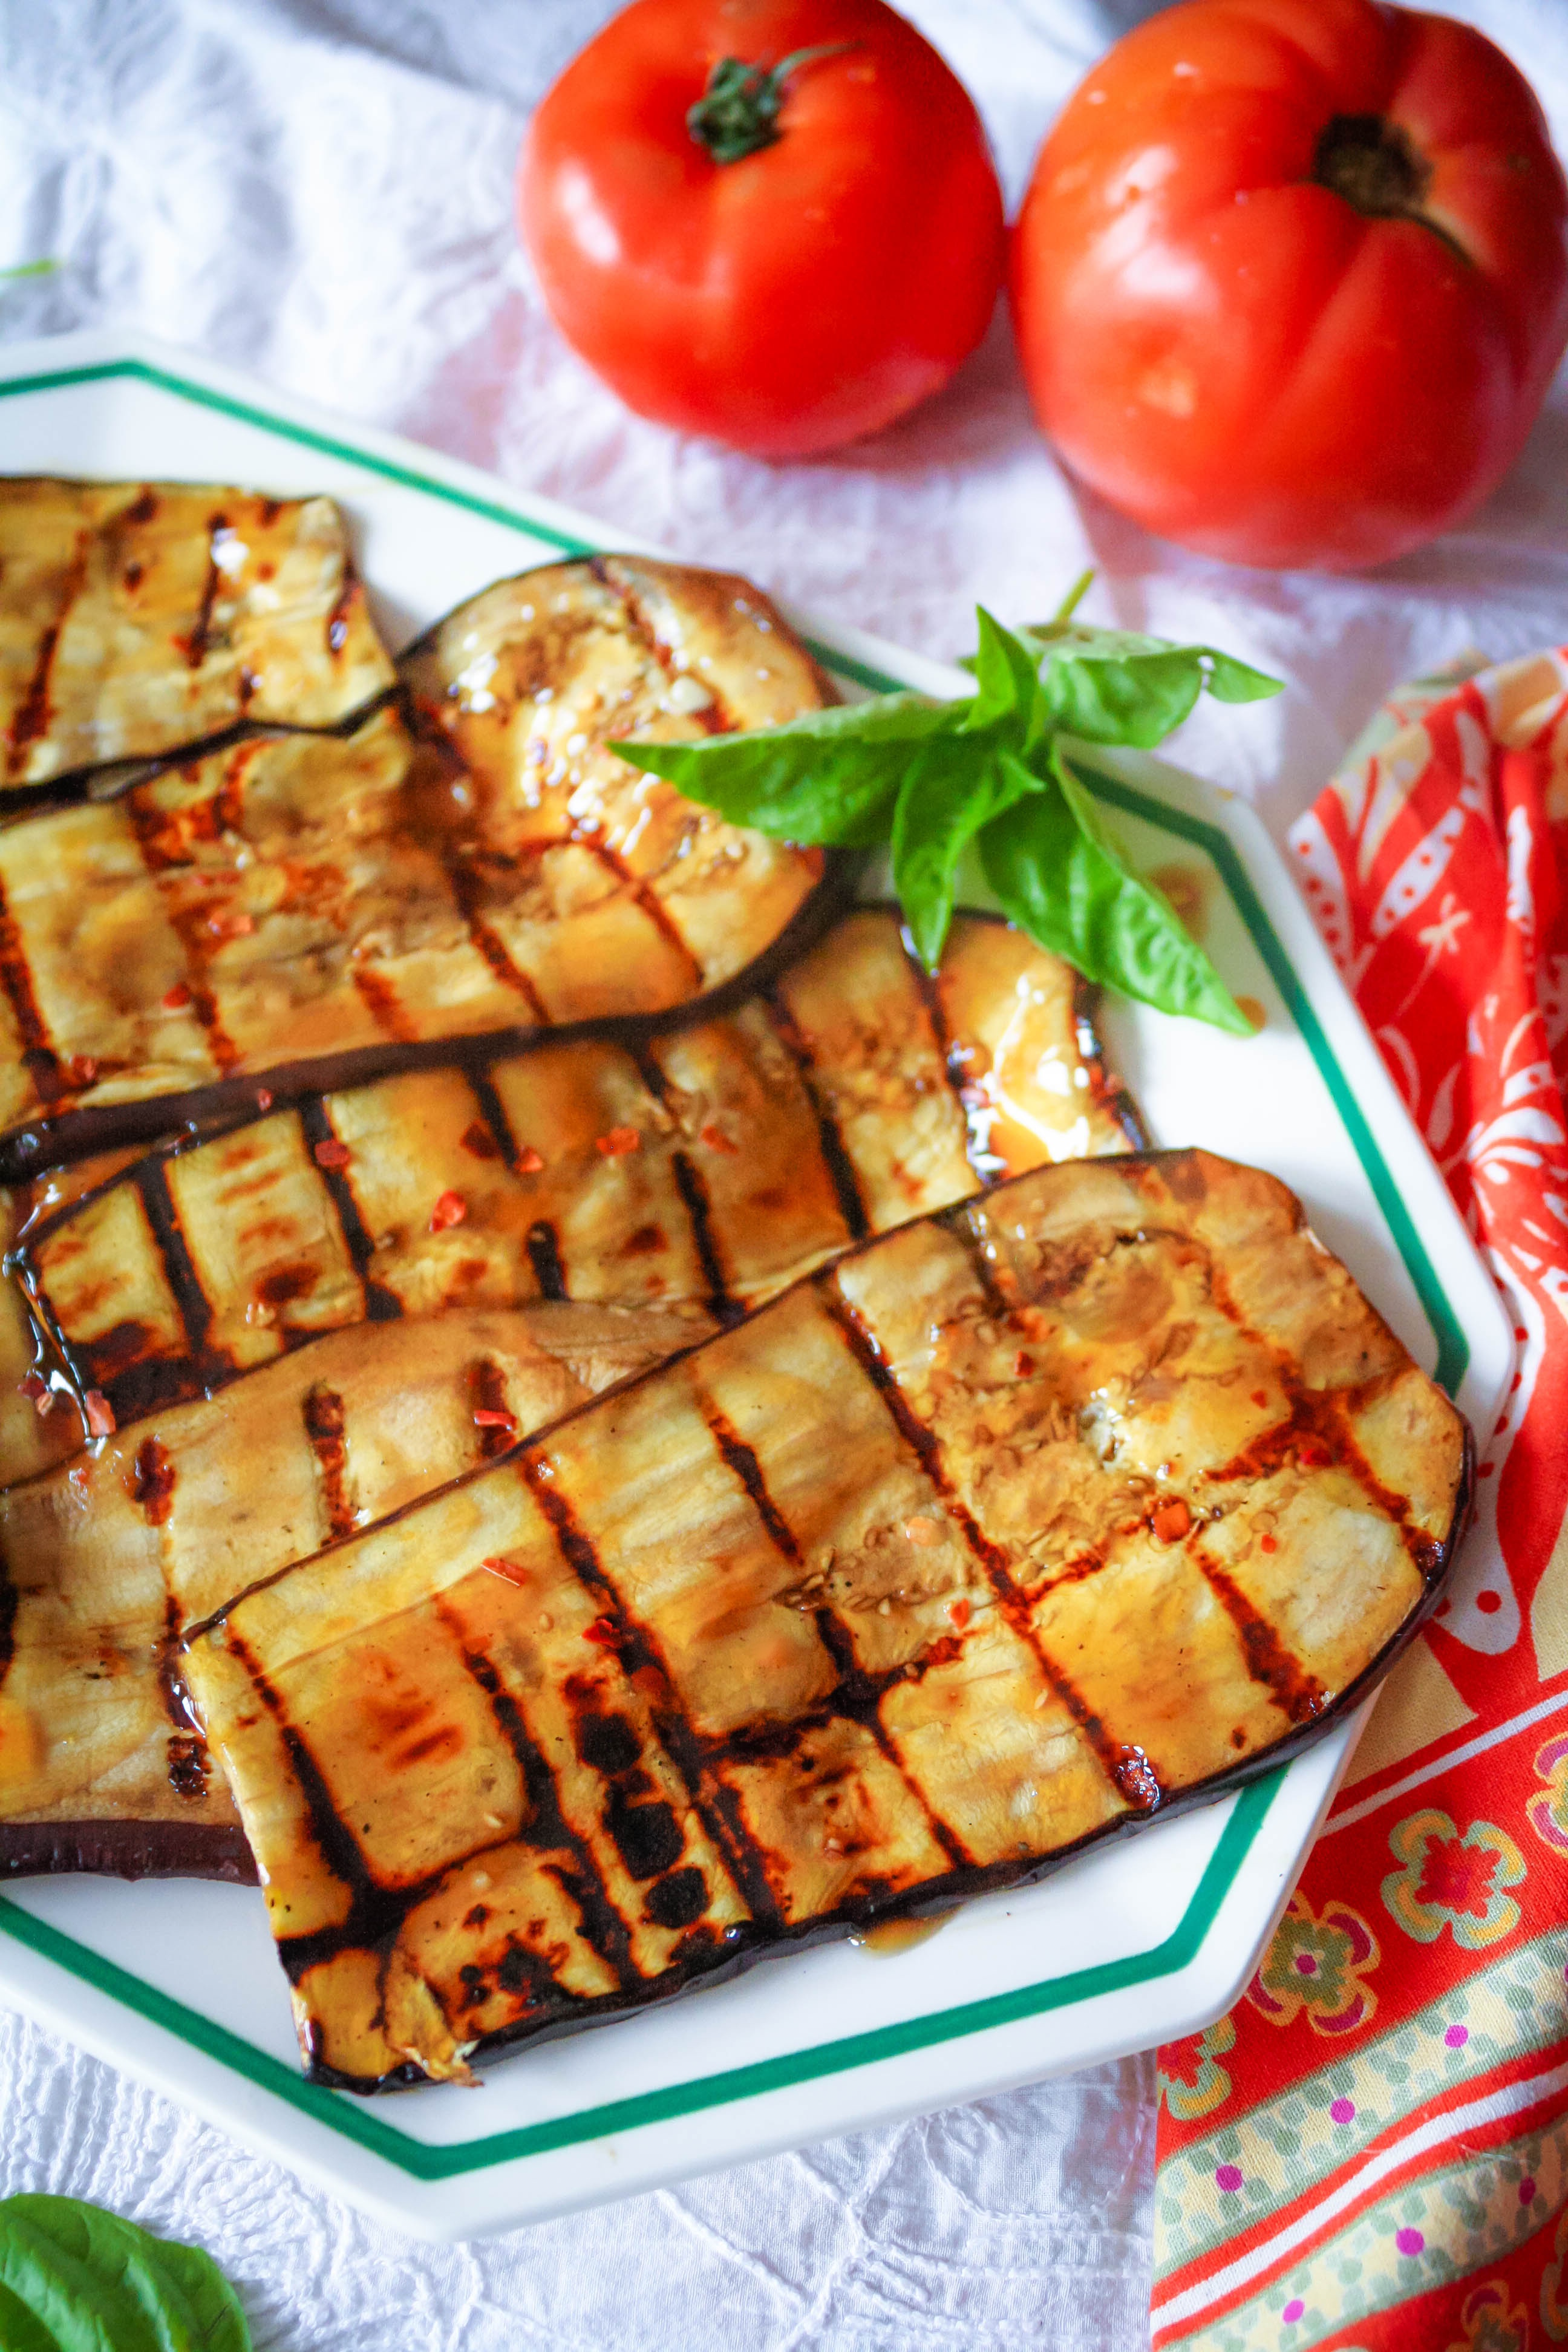 Grilled Eggplant with Teriyaki is a flavorful side dish or main dish! Grilled Eggplant with Teriyaki is a fabulous grilling option.